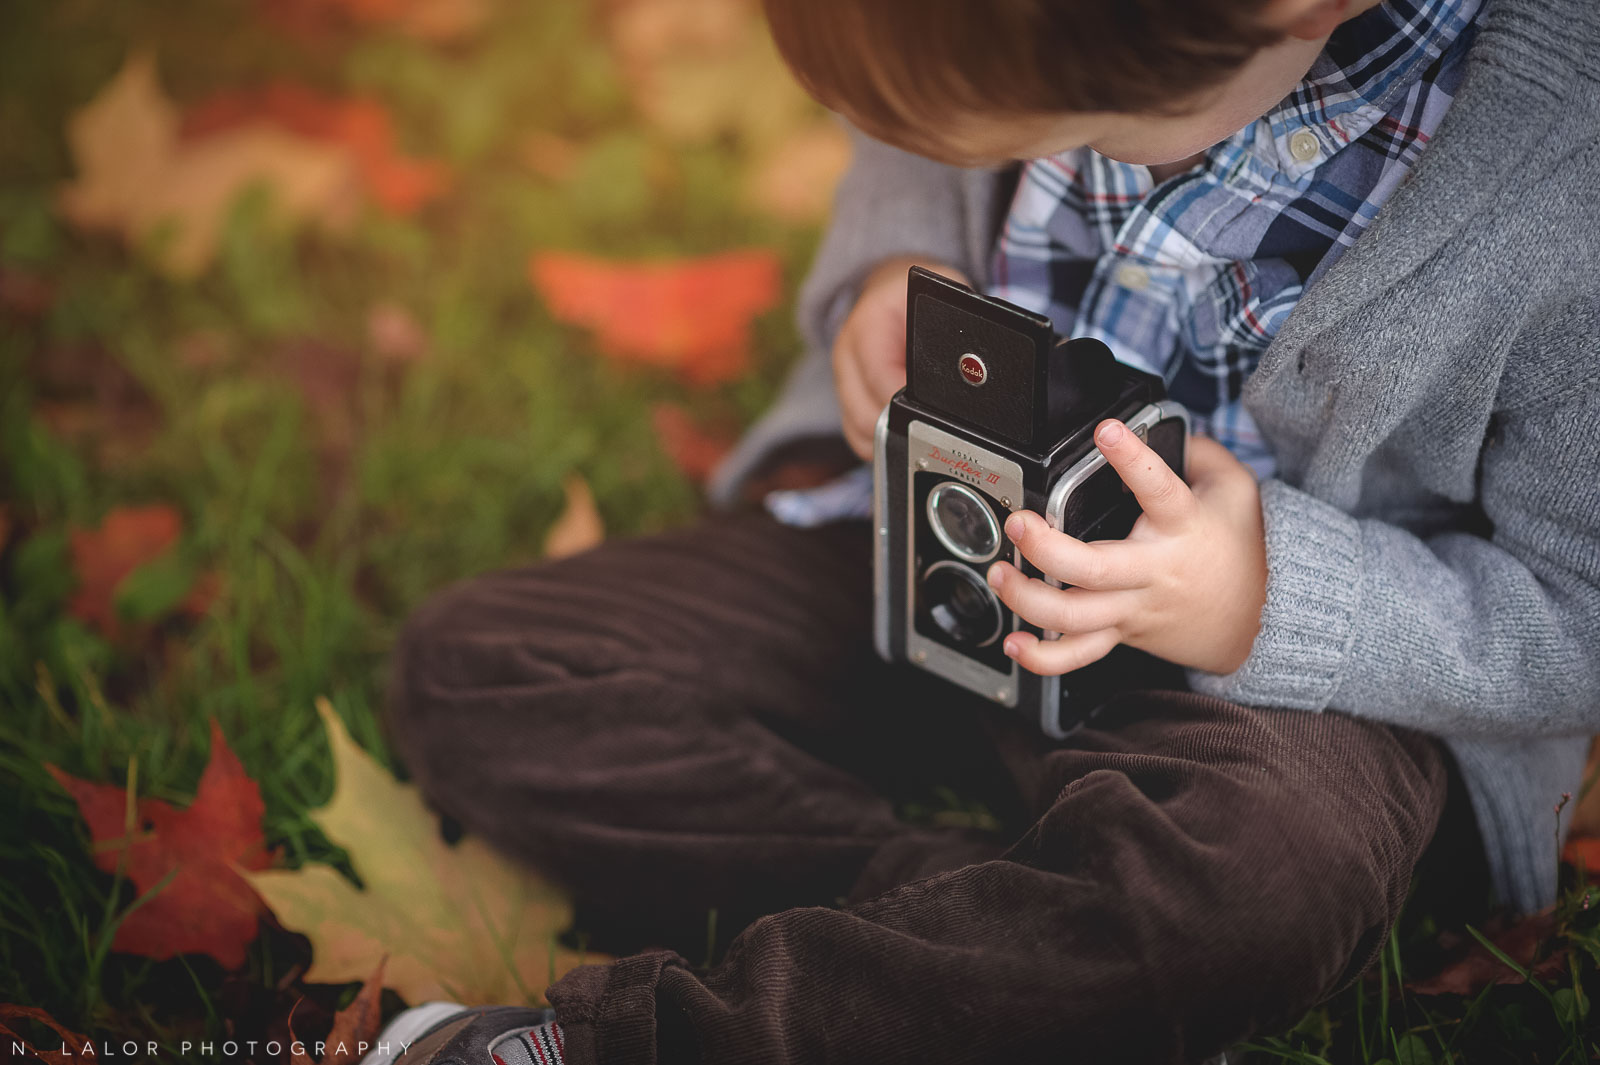 nlalor-photography-boy-fall-new-canaan-nature-center-photo-session-10.jpg